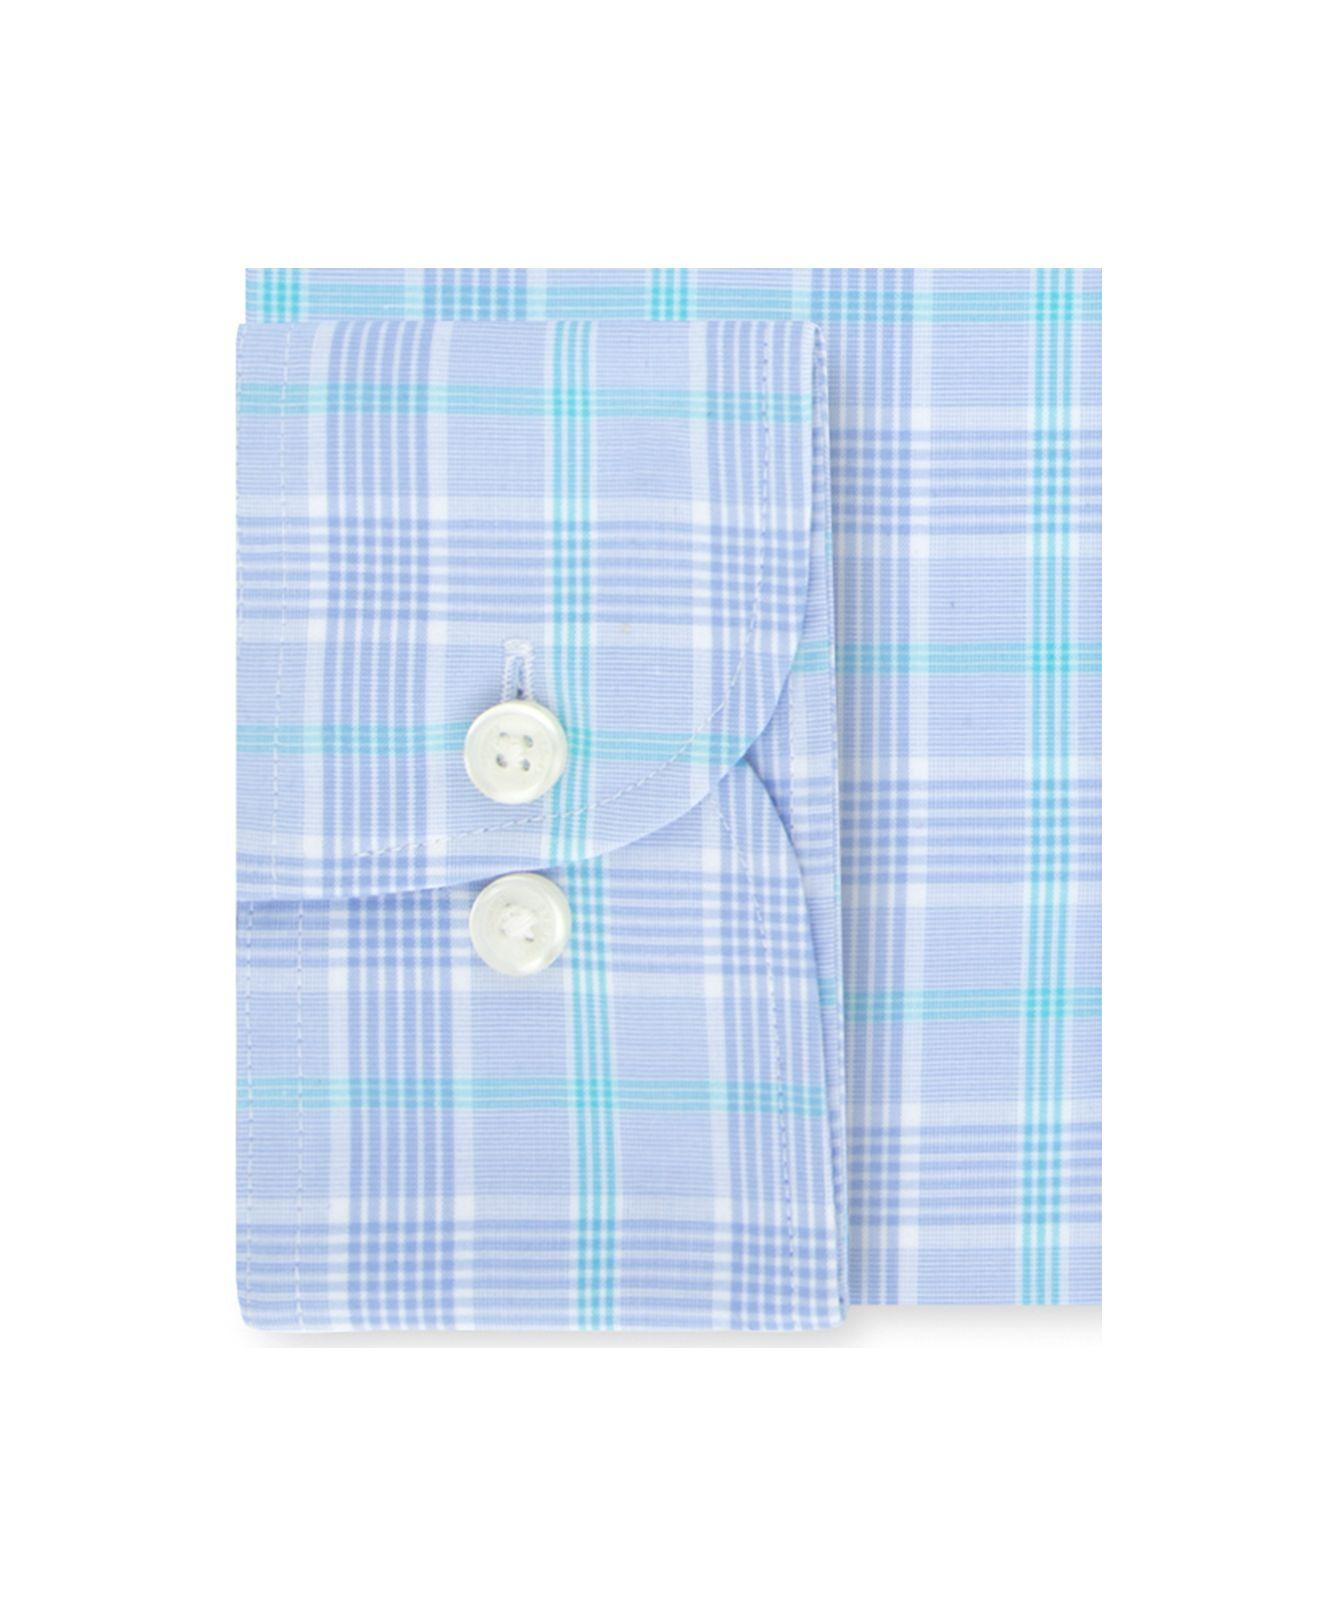 6155afcc6 Lyst - Tommy Hilfiger Classic/regular Fit Non-iron Thflex Stretch Blue  Check Dress Shirt in Blue for Men